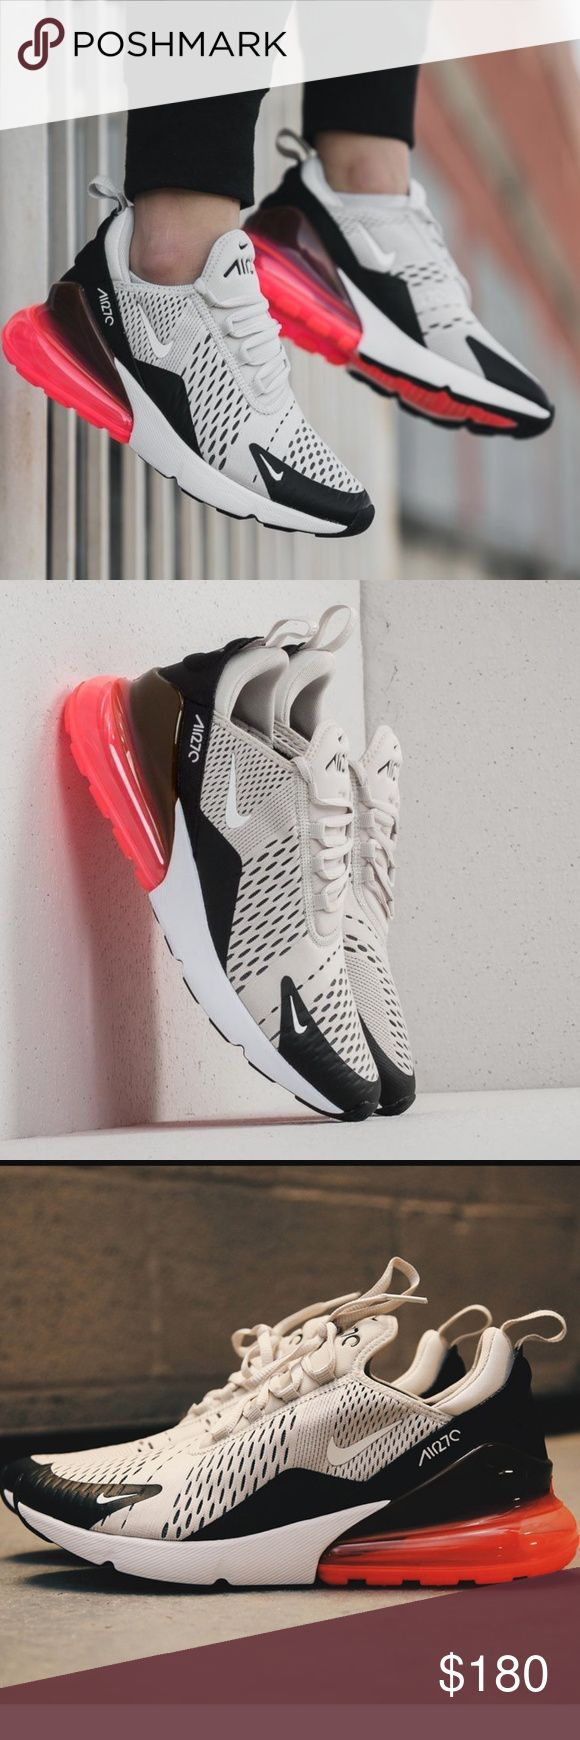 best loved 33a95 ad5dc OFF-WHITE x Nike Air Max 90 Black To Release In October